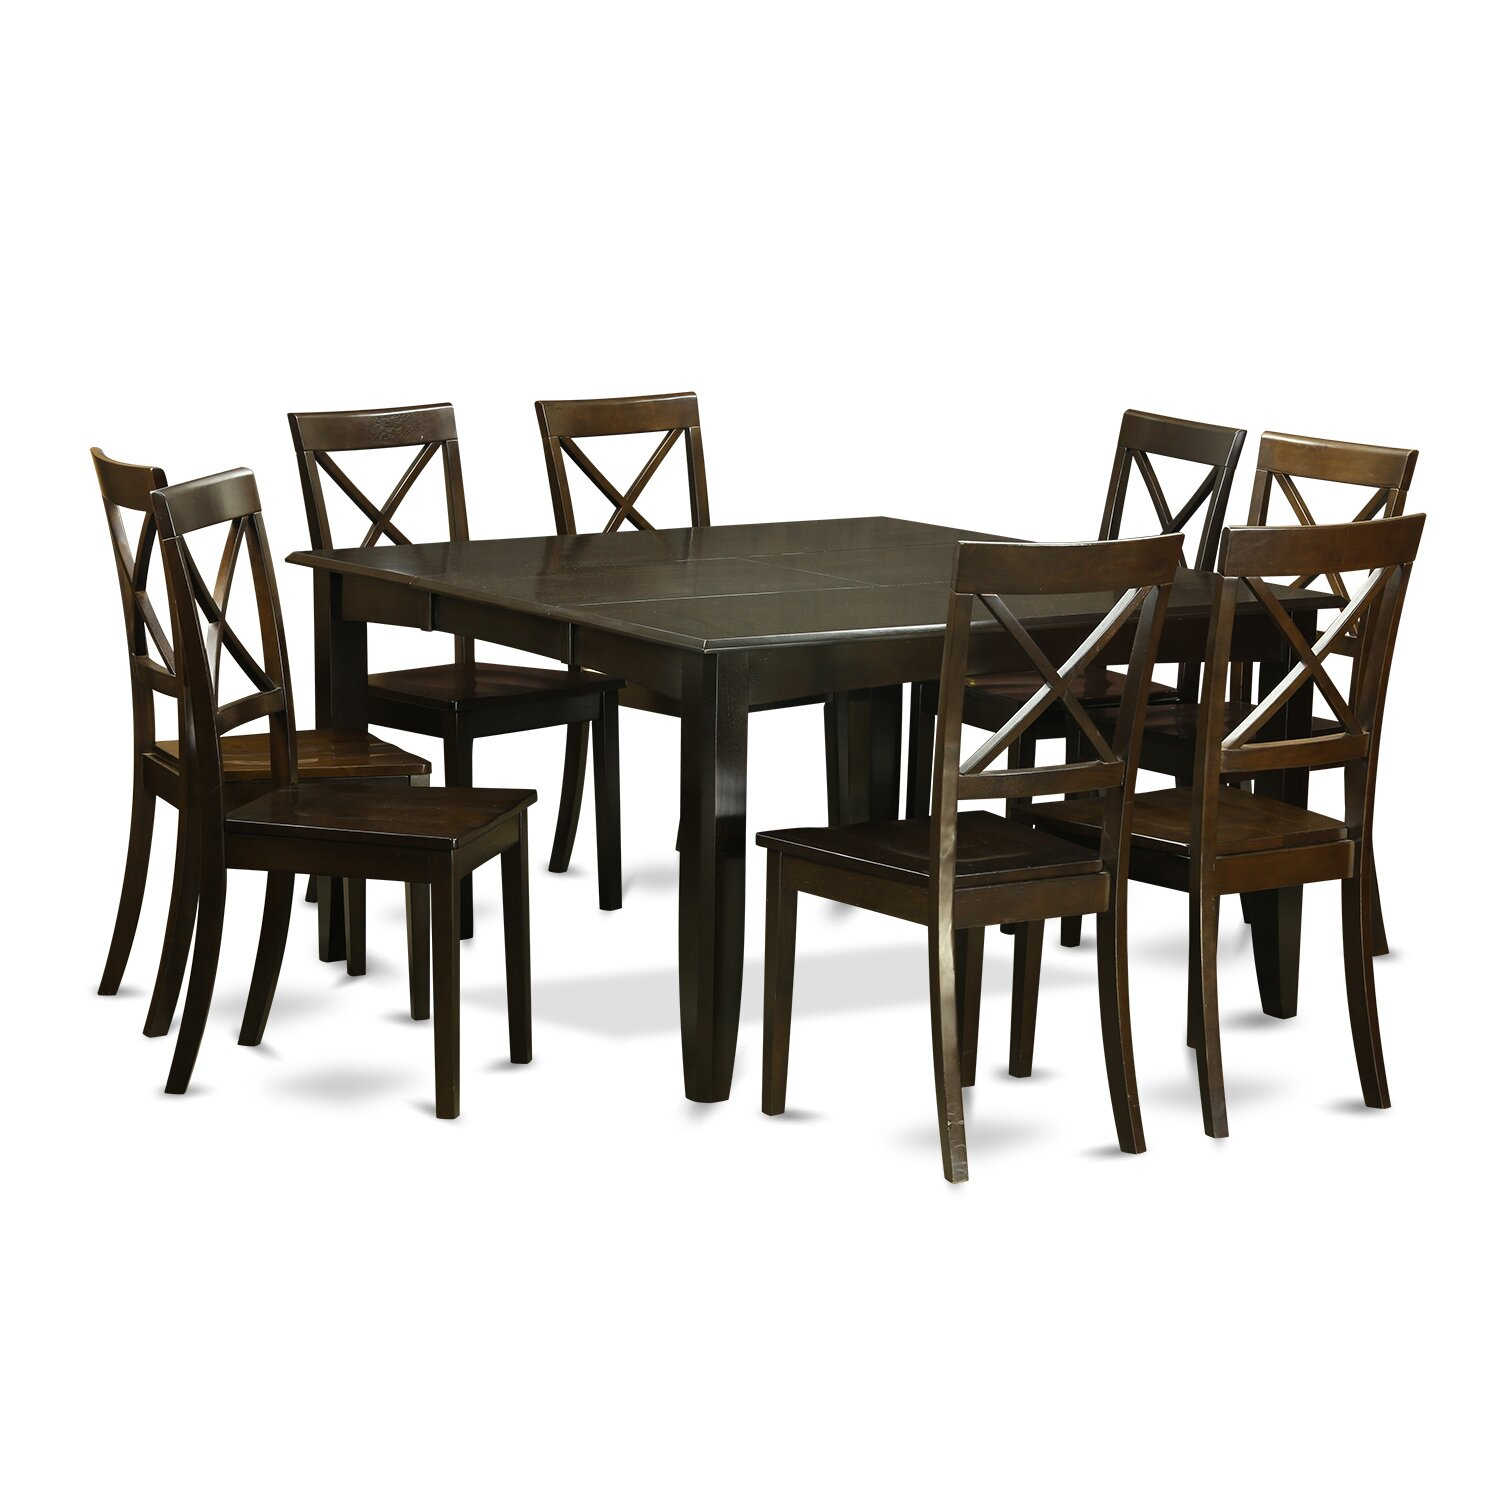 9 Piece Dining Table Set For 8 Dining Room Table With 8: Parfait 9 Piece Dinning Set